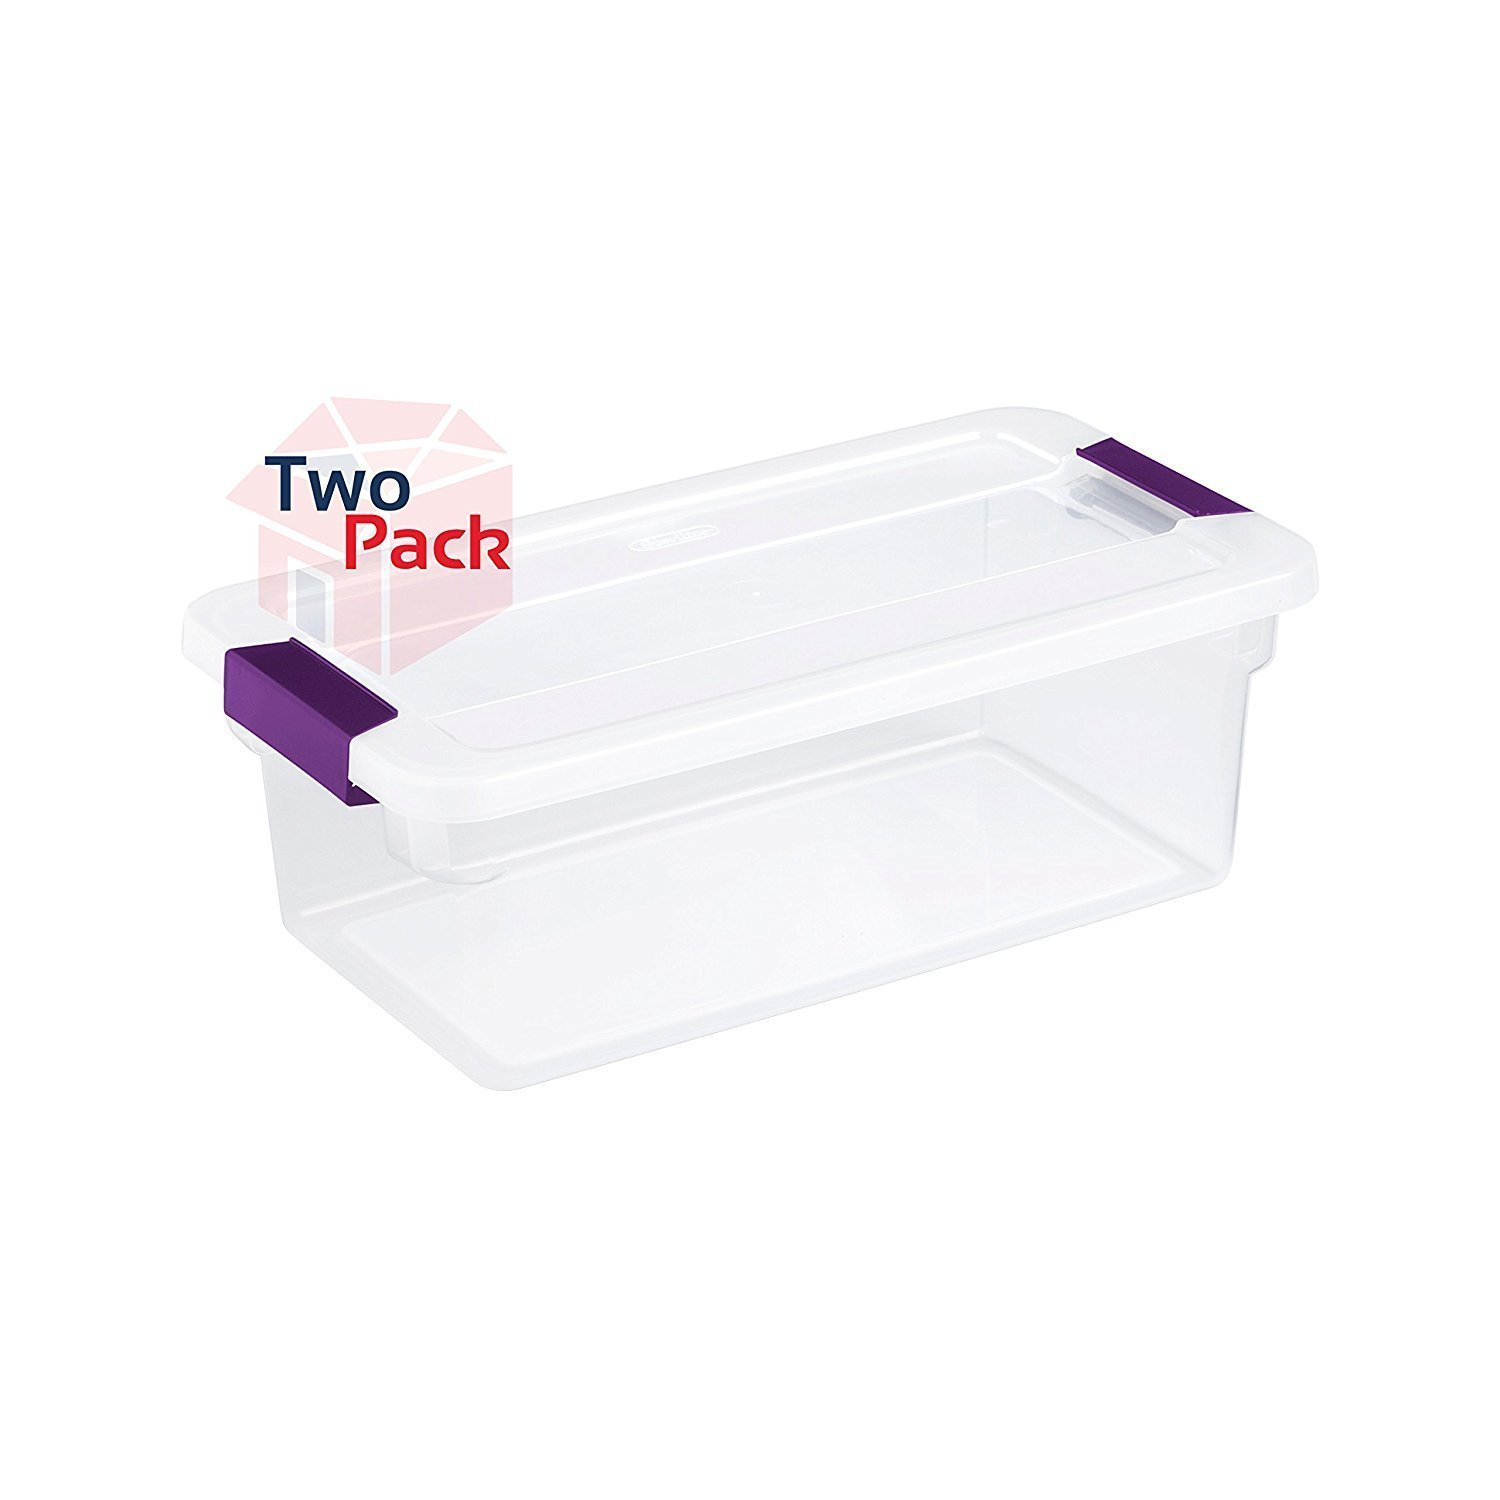 Sterilite 17511712 6-Quart ClearView Latch Box, with Plum Handles, 2-Pack